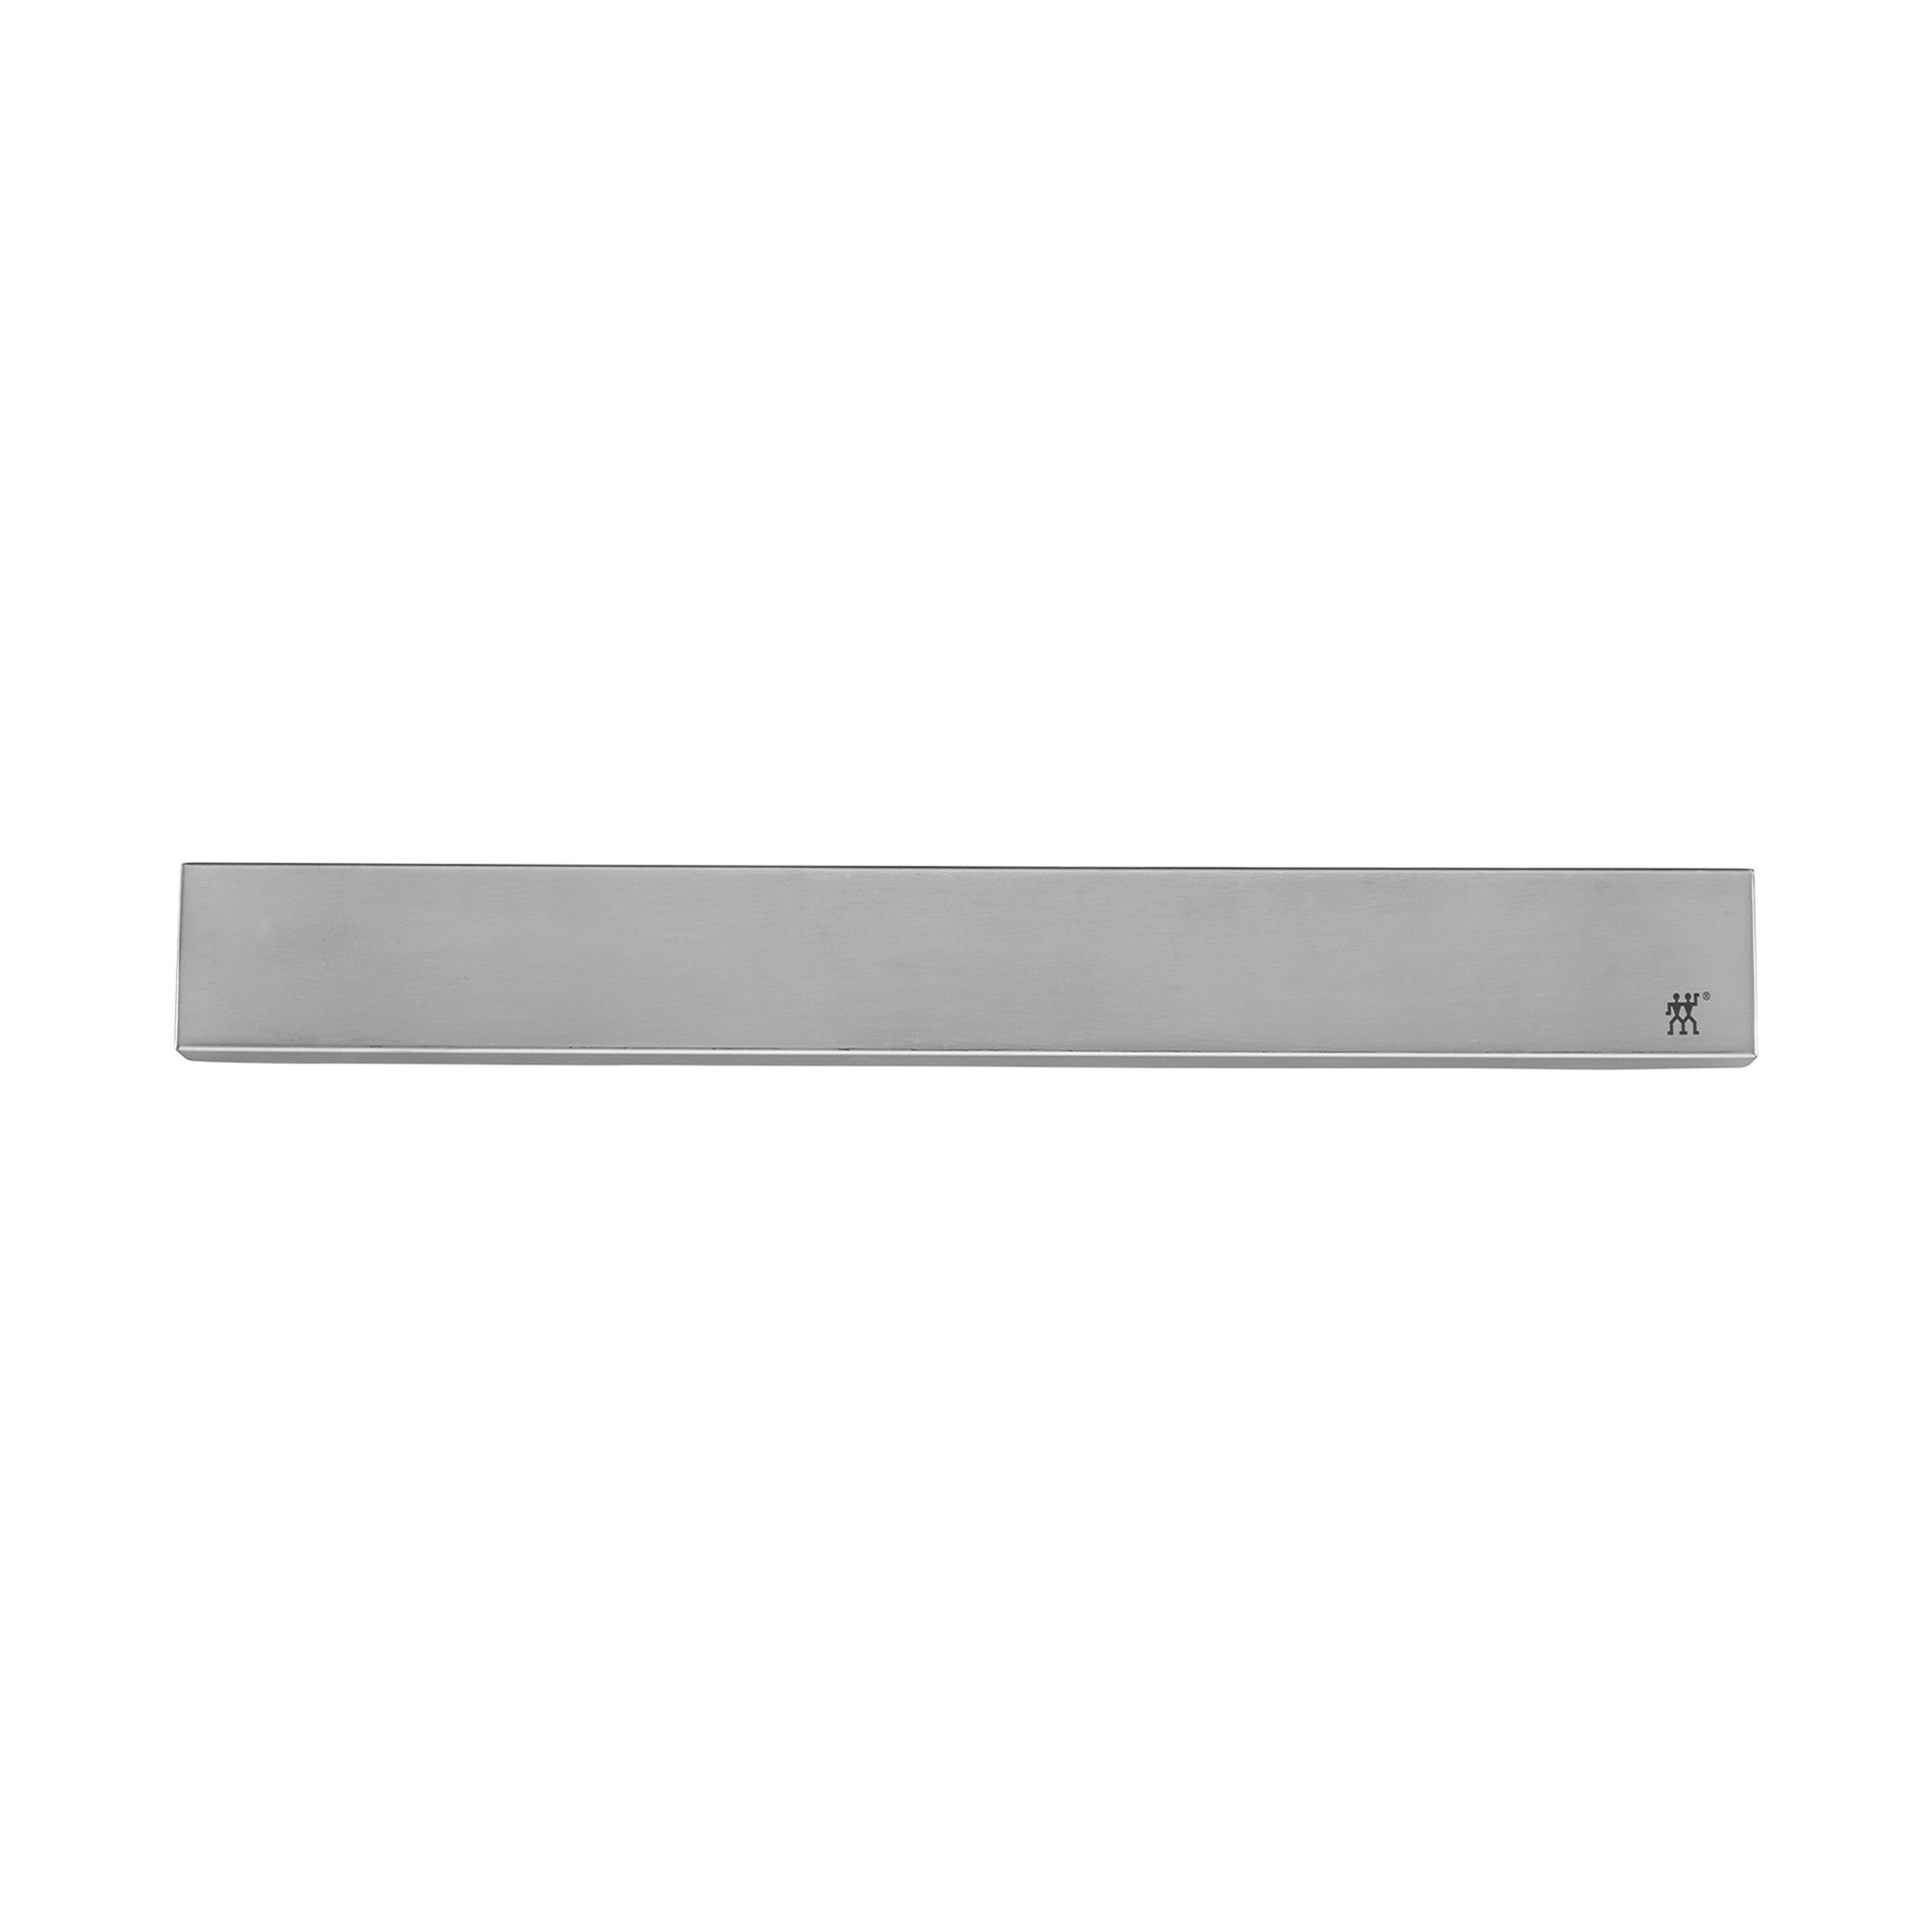 ZWILLING J.A. Henckels 17.75-inch Stainless Steel Magnetic Knife Bar by ZWILLING J.A. Henckels